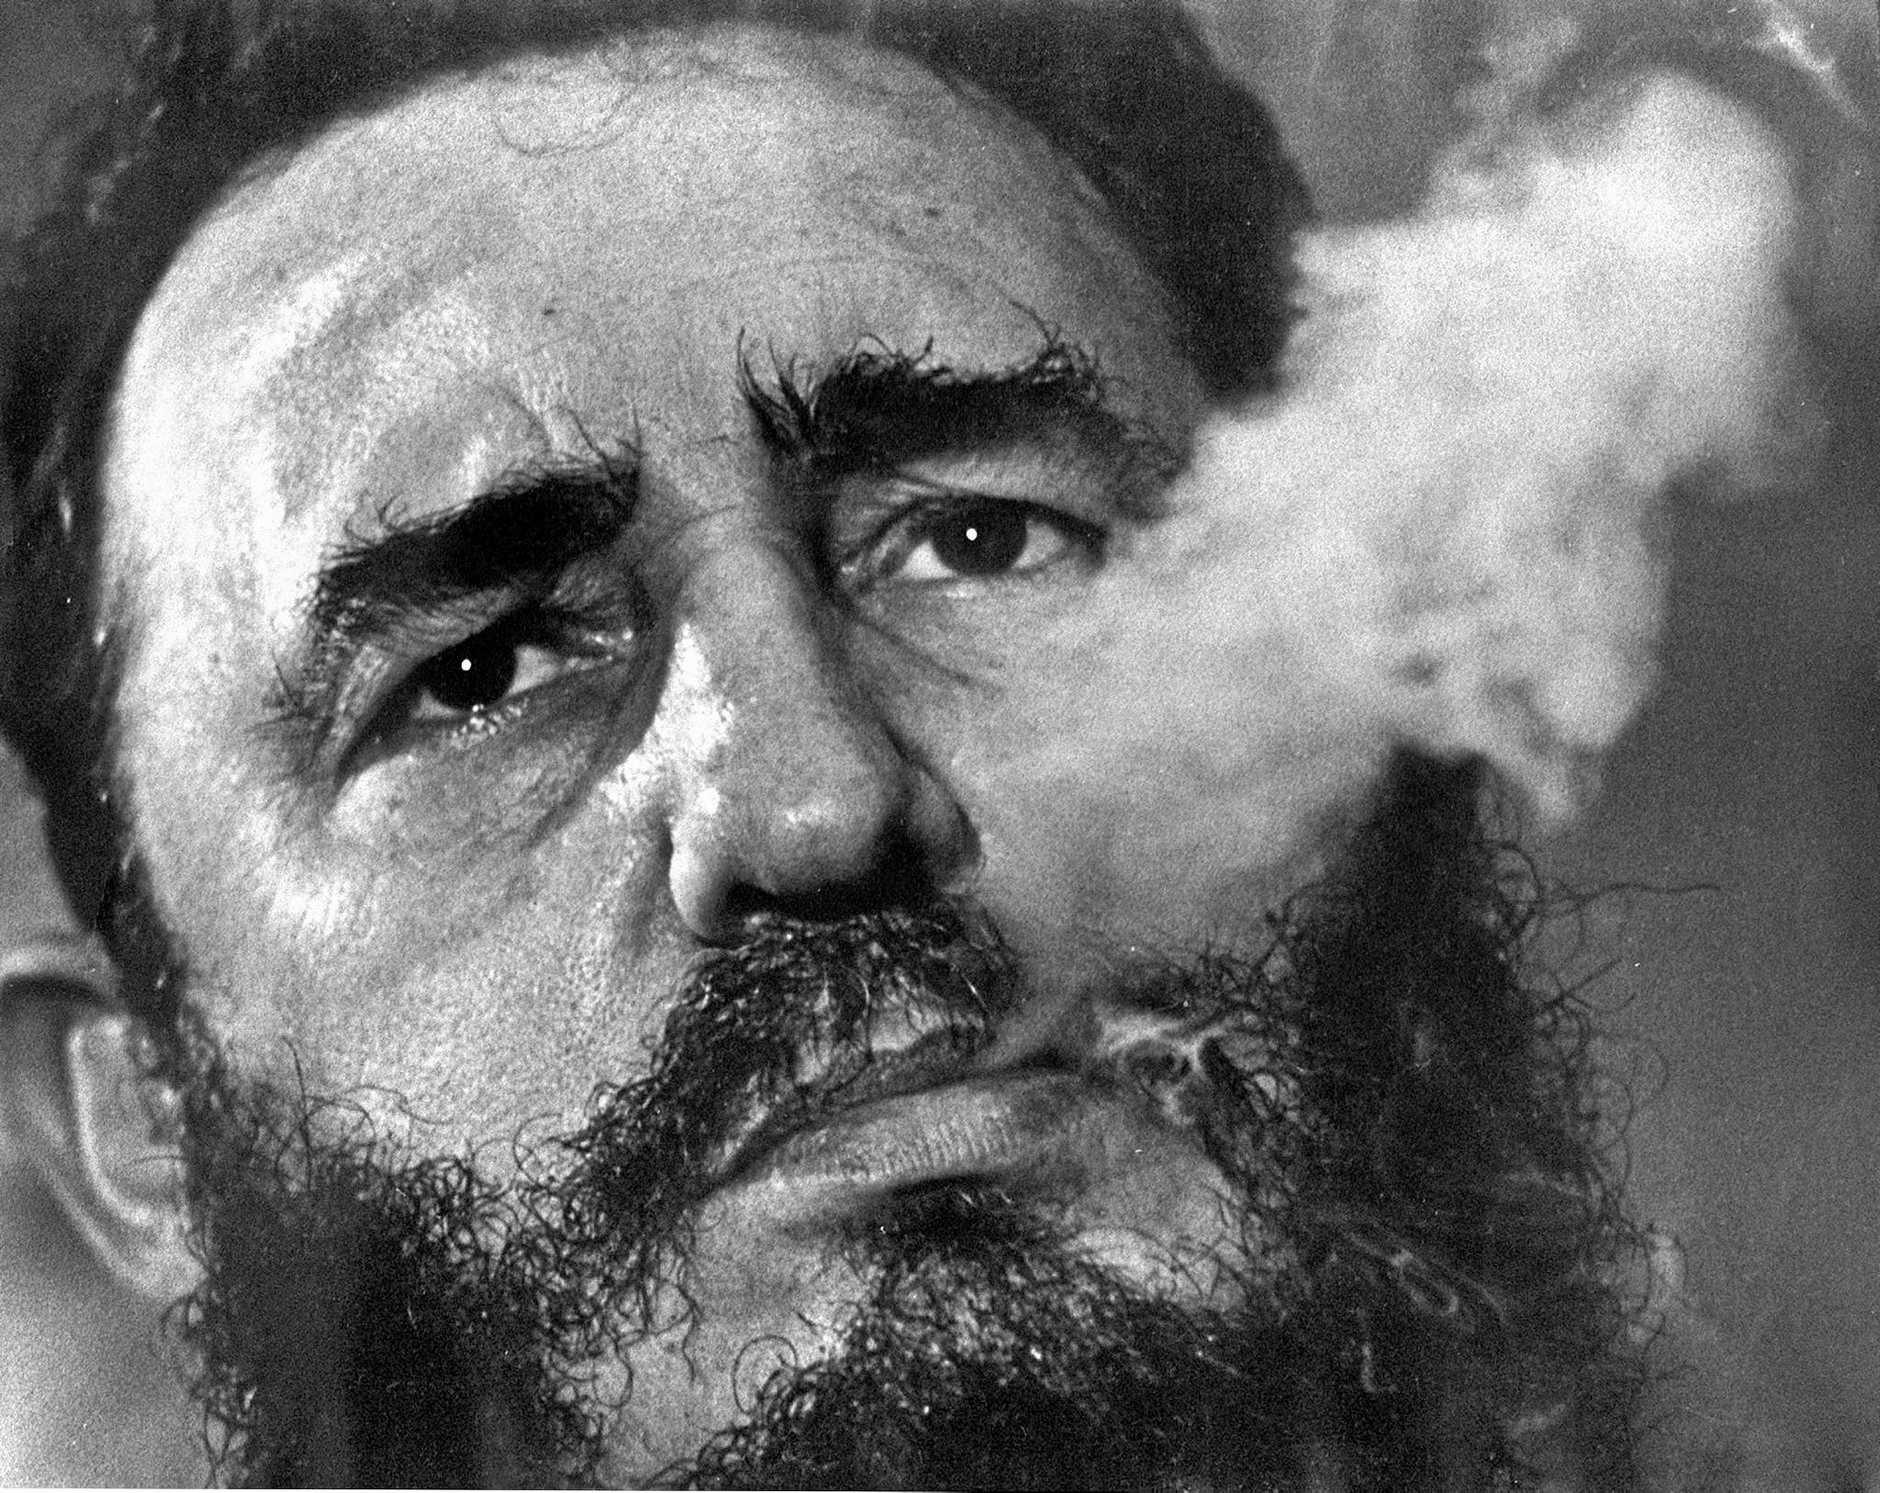 FIREBRAND: Former Cuban leader Fidel Castro made his mark on world history.